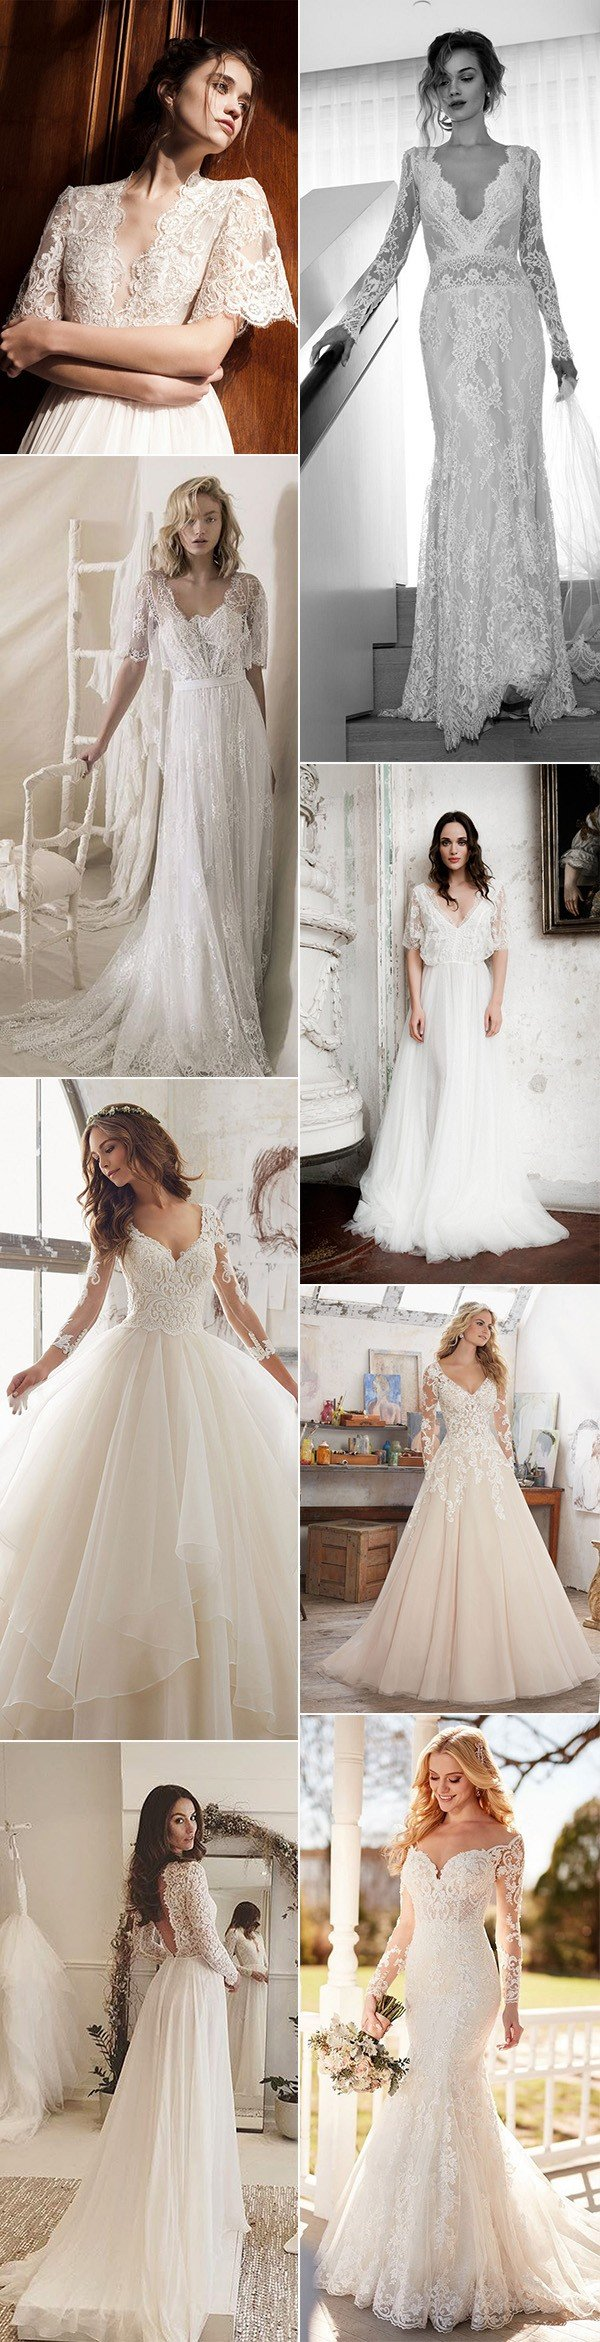 trending wedding dresses with long sleeves for 2018 trends